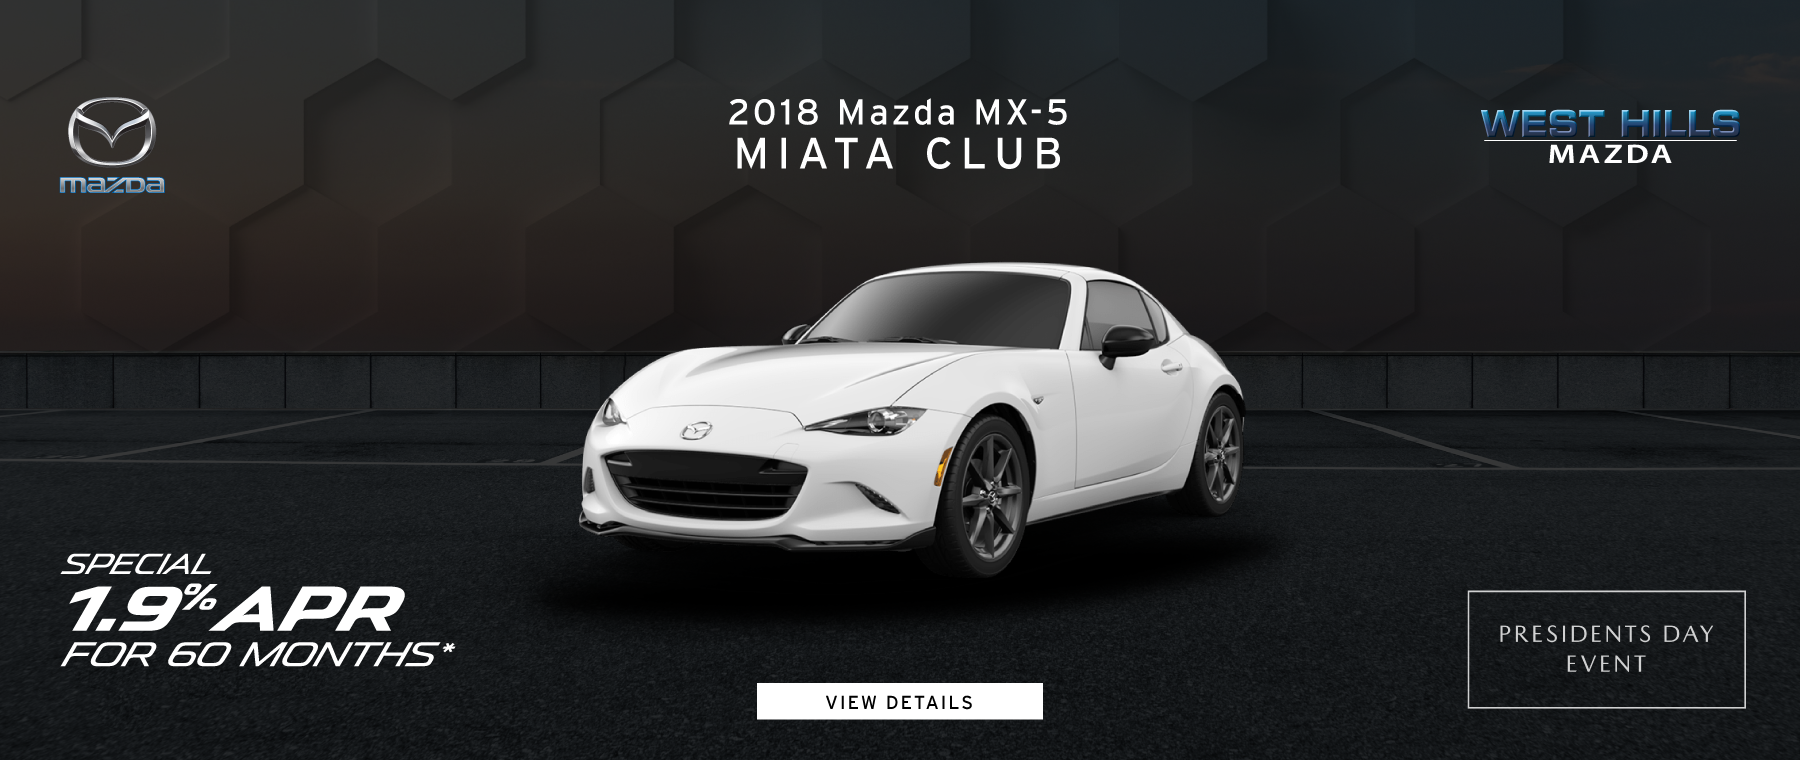 2018 Mazda MX-5 Miata Club 1.9% APR for 60mos.* *Valid on 2018 Mazda MX-5 Miata Club. 1.9% APR for 60 mos. Subject to credit approval through participating lender – not all will qualify. Down payment and other factors may affect qualification. Valid on VIN: JM1NDAC70J0204386. MSRP is $30,050. 60 months at $17.53 per month per $1000 financed with $0 down. A negotiable dealer documentary service fee of up to $150 may be added to the sale price or capitalized cost. Excludes taxes, tags, registration and title, insurance and dealer charges. Offer Expires: 2/28/2019.